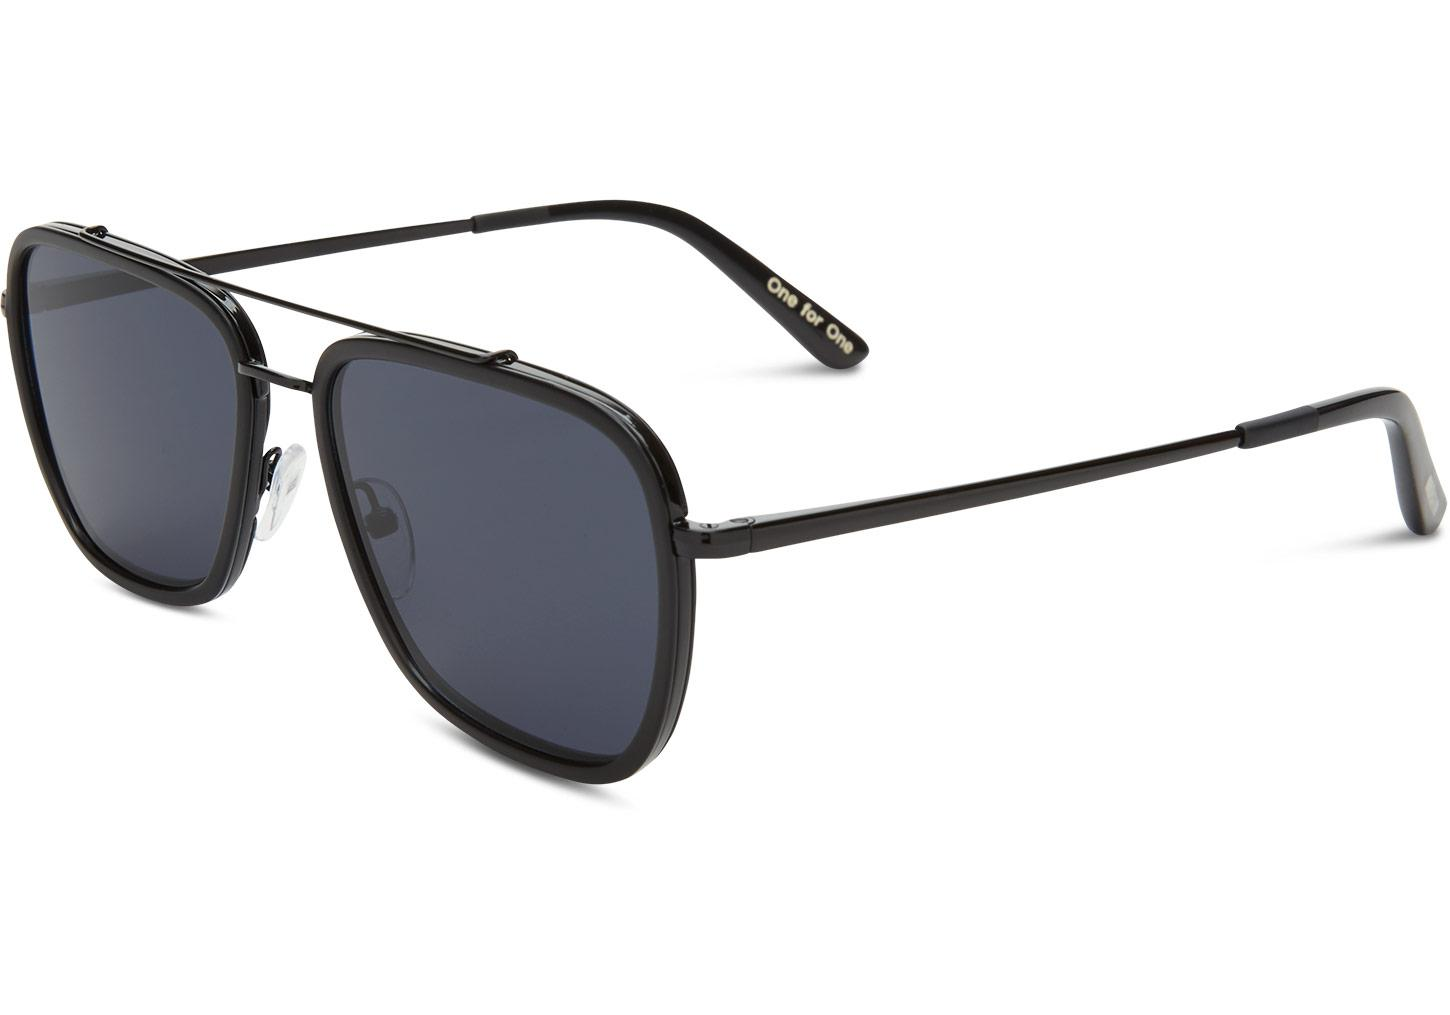 e7ffd6706a4f Lyst - TOMS Irwin Shiny Black in Black for Men - Save 21%